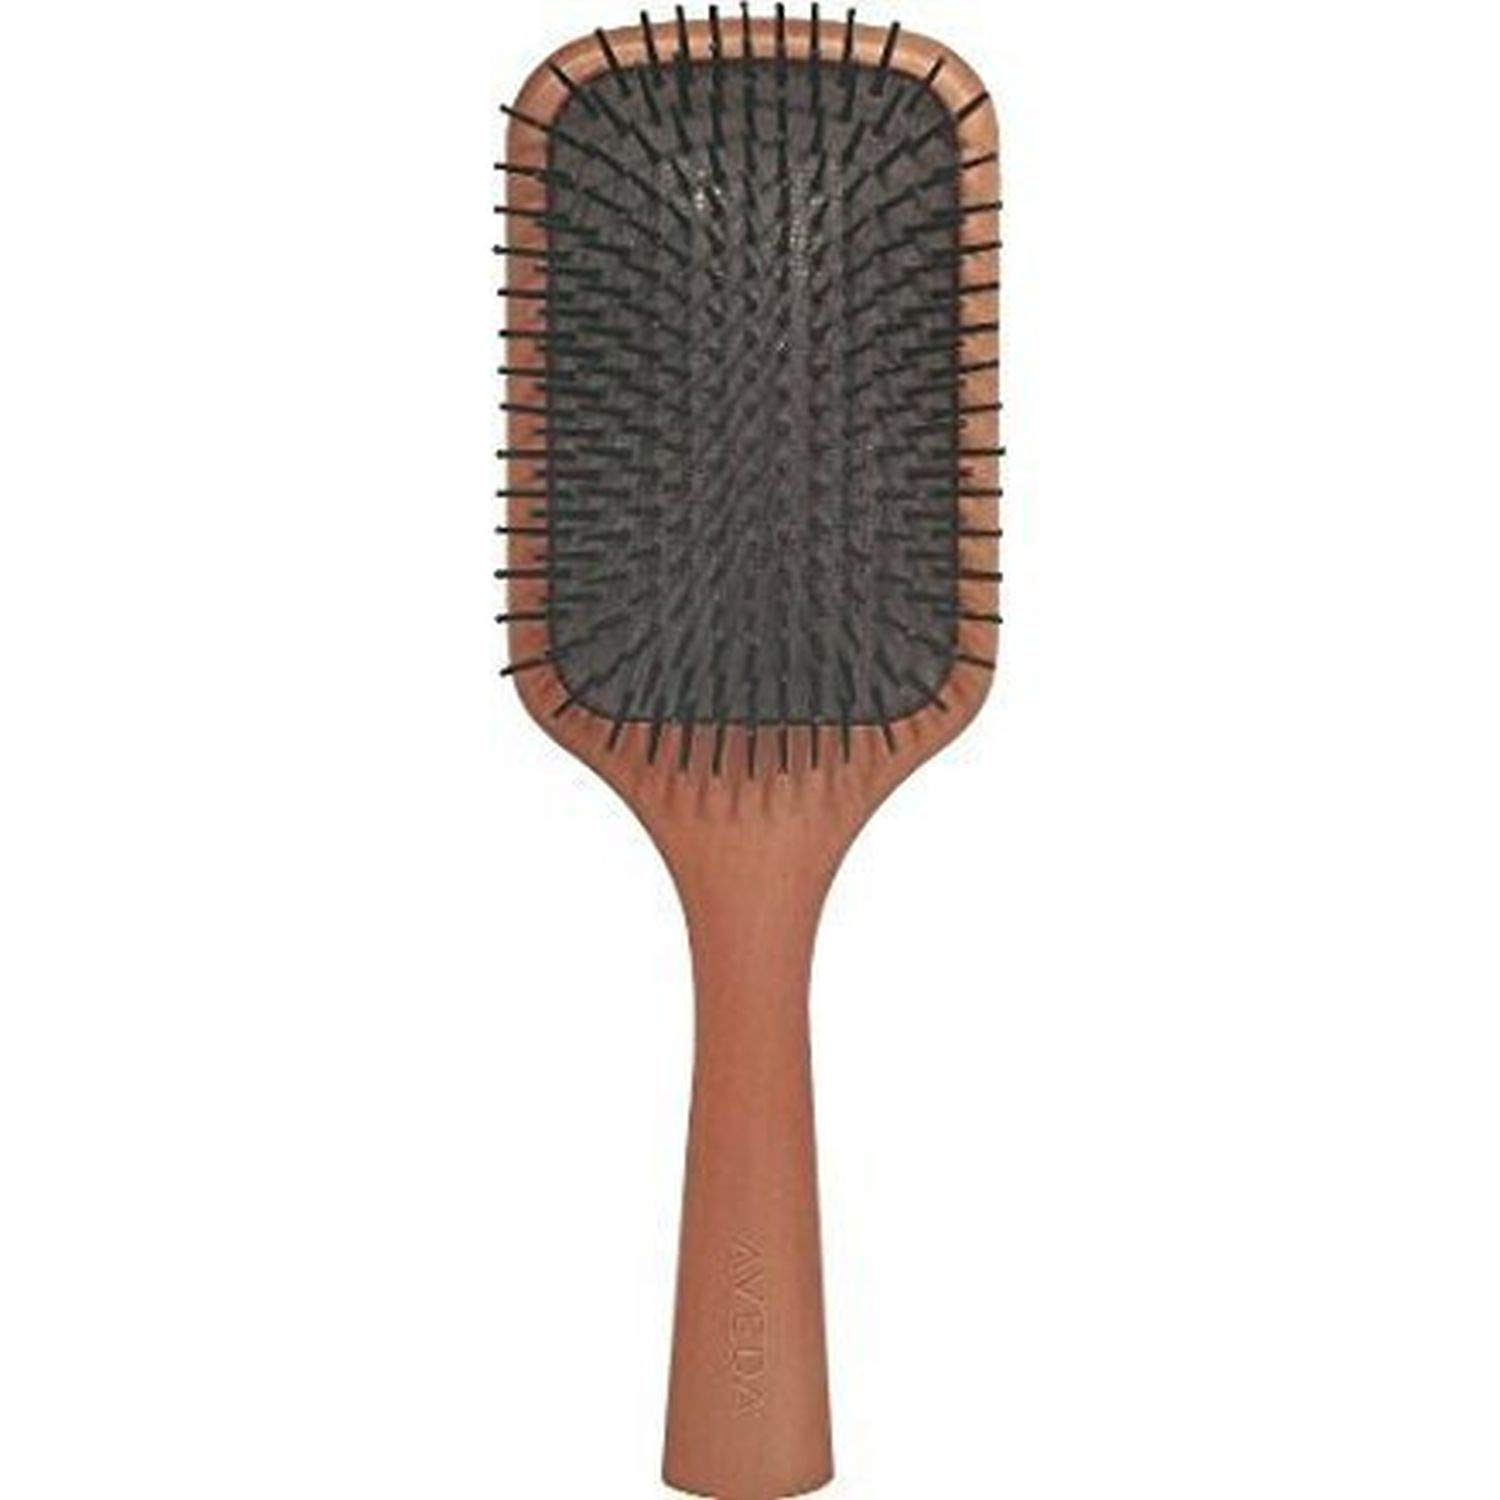 Aveda Wooden Large Paddle Brush Limited price - Max 82% OFF PACK OF 2 BEAUTY